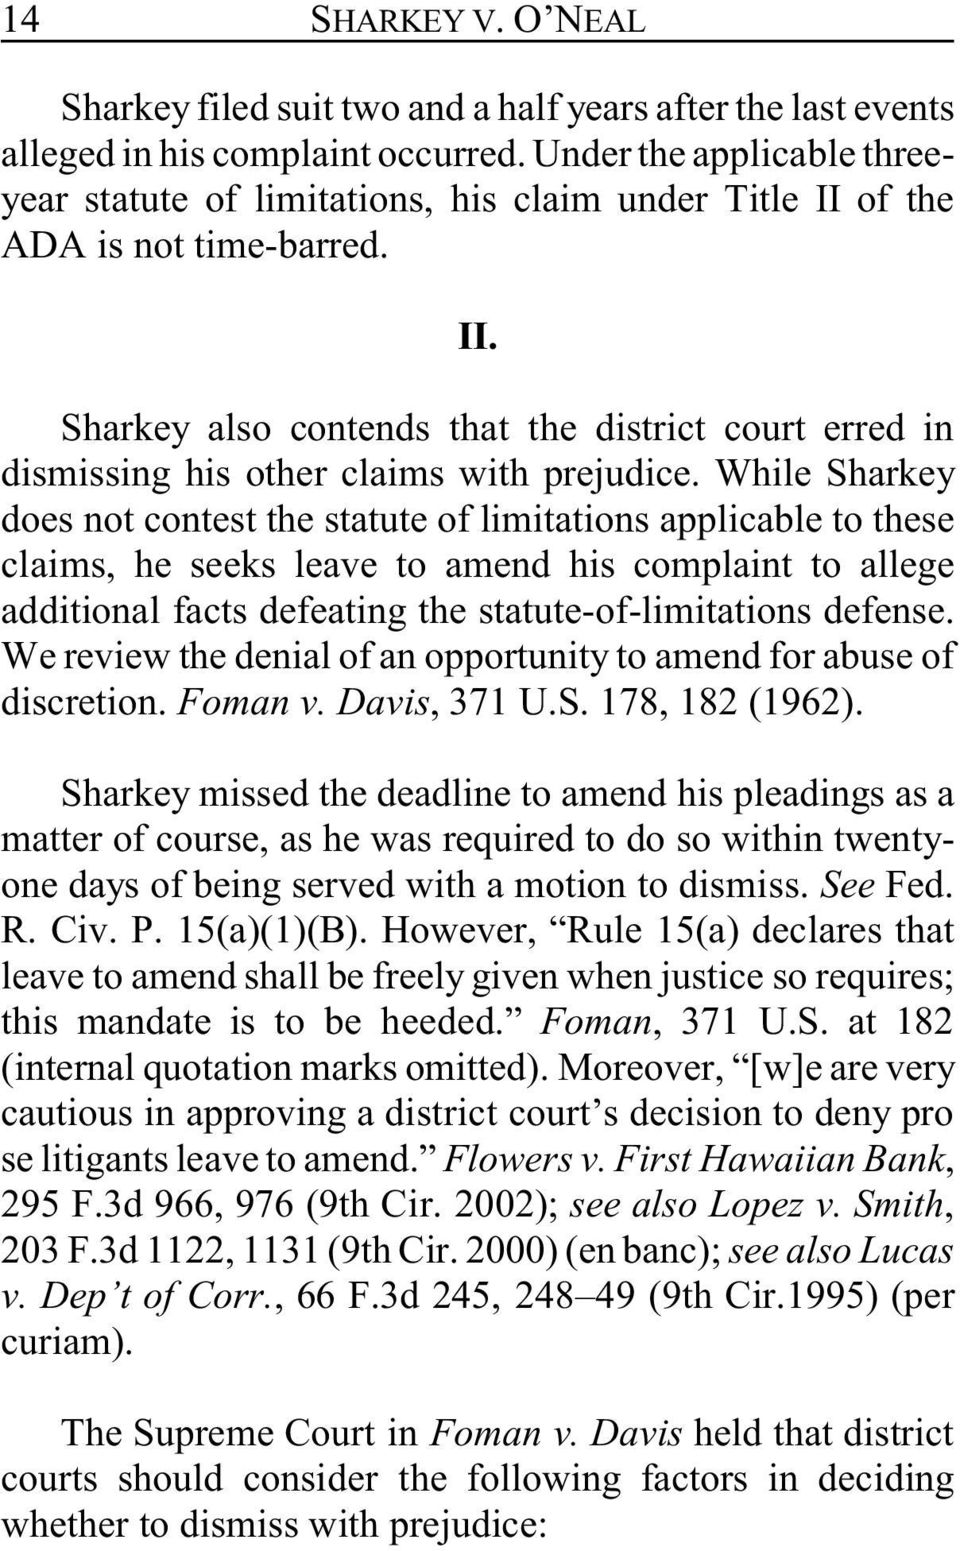 While Sharkey does not contest the statute of limitations applicable to these claims, he seeks leave to amend his complaint to allege additional facts defeating the statute-of-limitations defense.